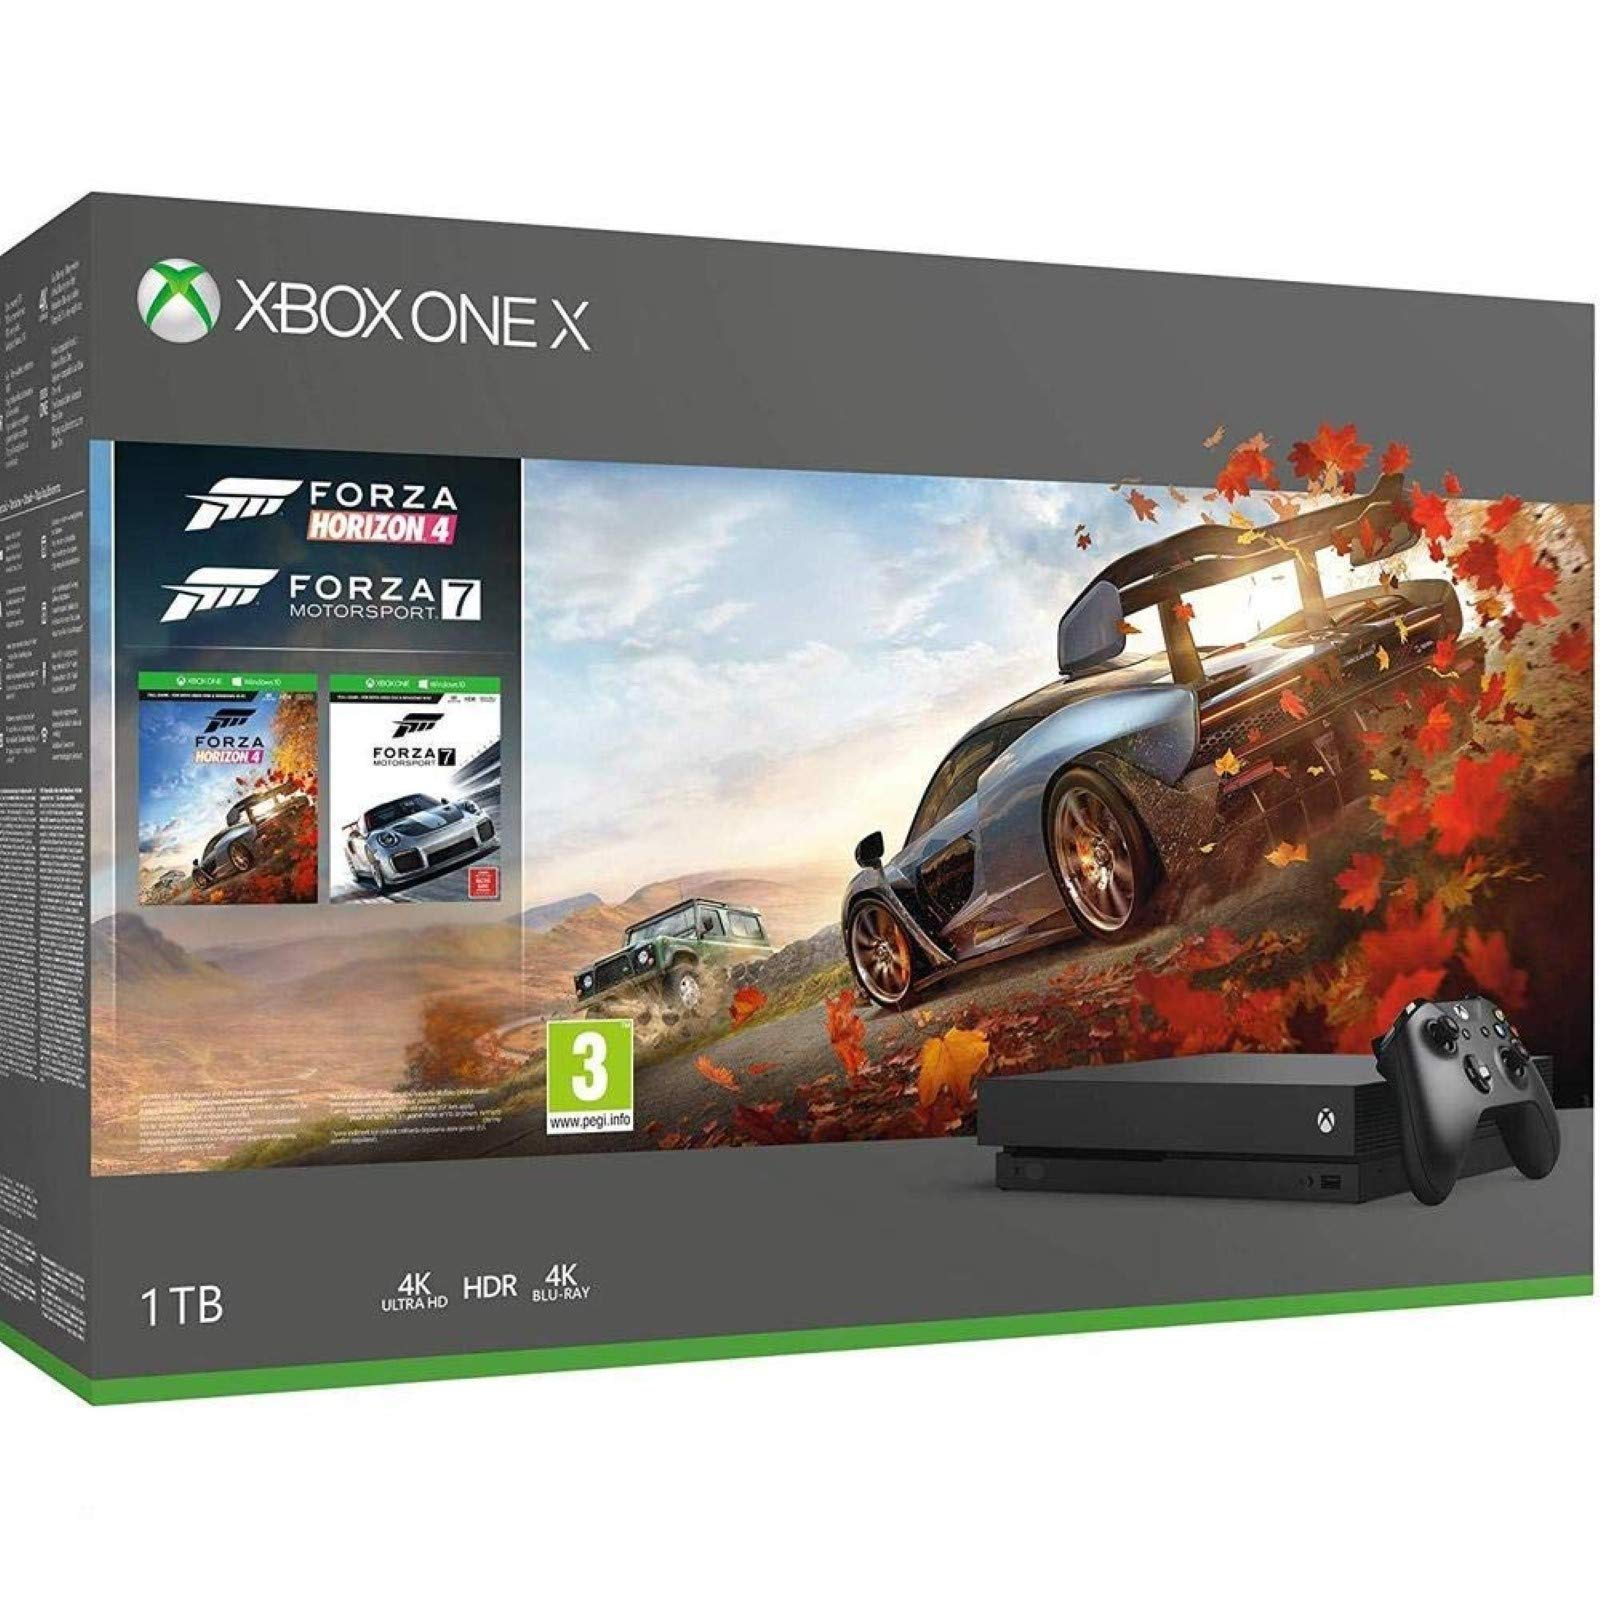 Xbox One X – Consola 1 TB, Color Blanco + Fallout 76 [Bundle]